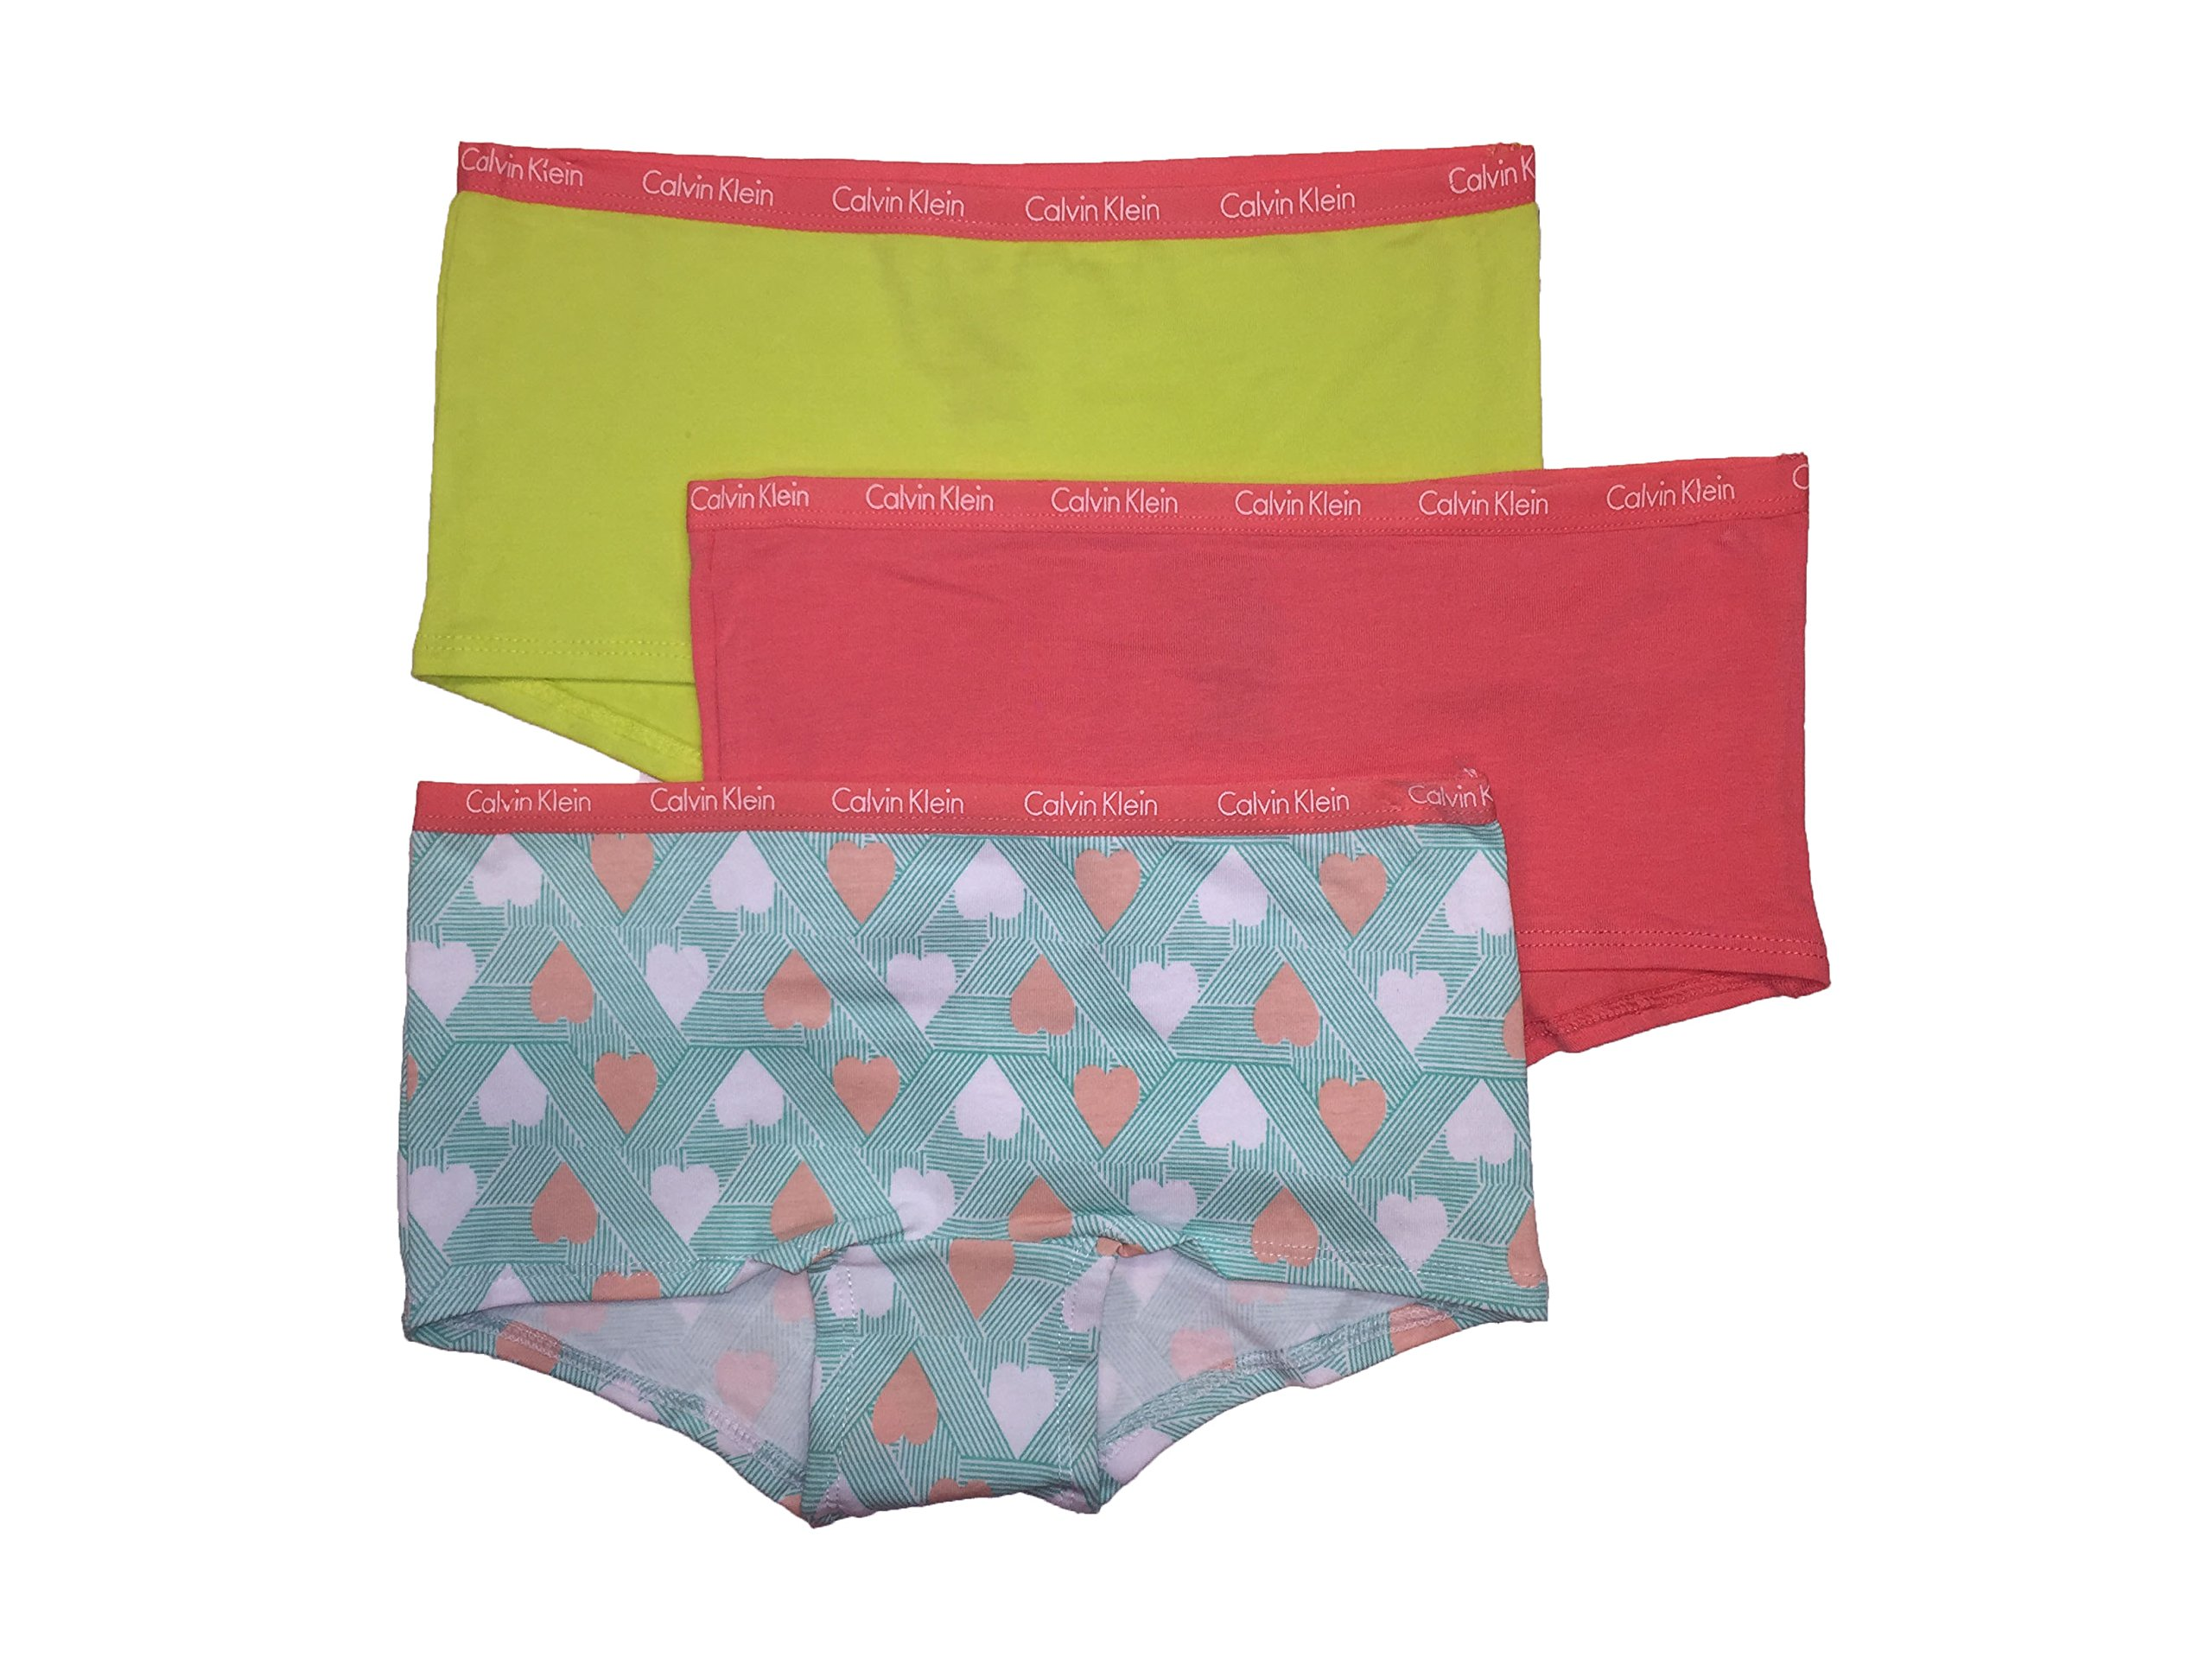 93760586a83f Galleon - Calvin Klein Girls Boy Short Panties, 3 Pack (Lime  (37D37043-99)/Vivid Pink/hearts, Small)